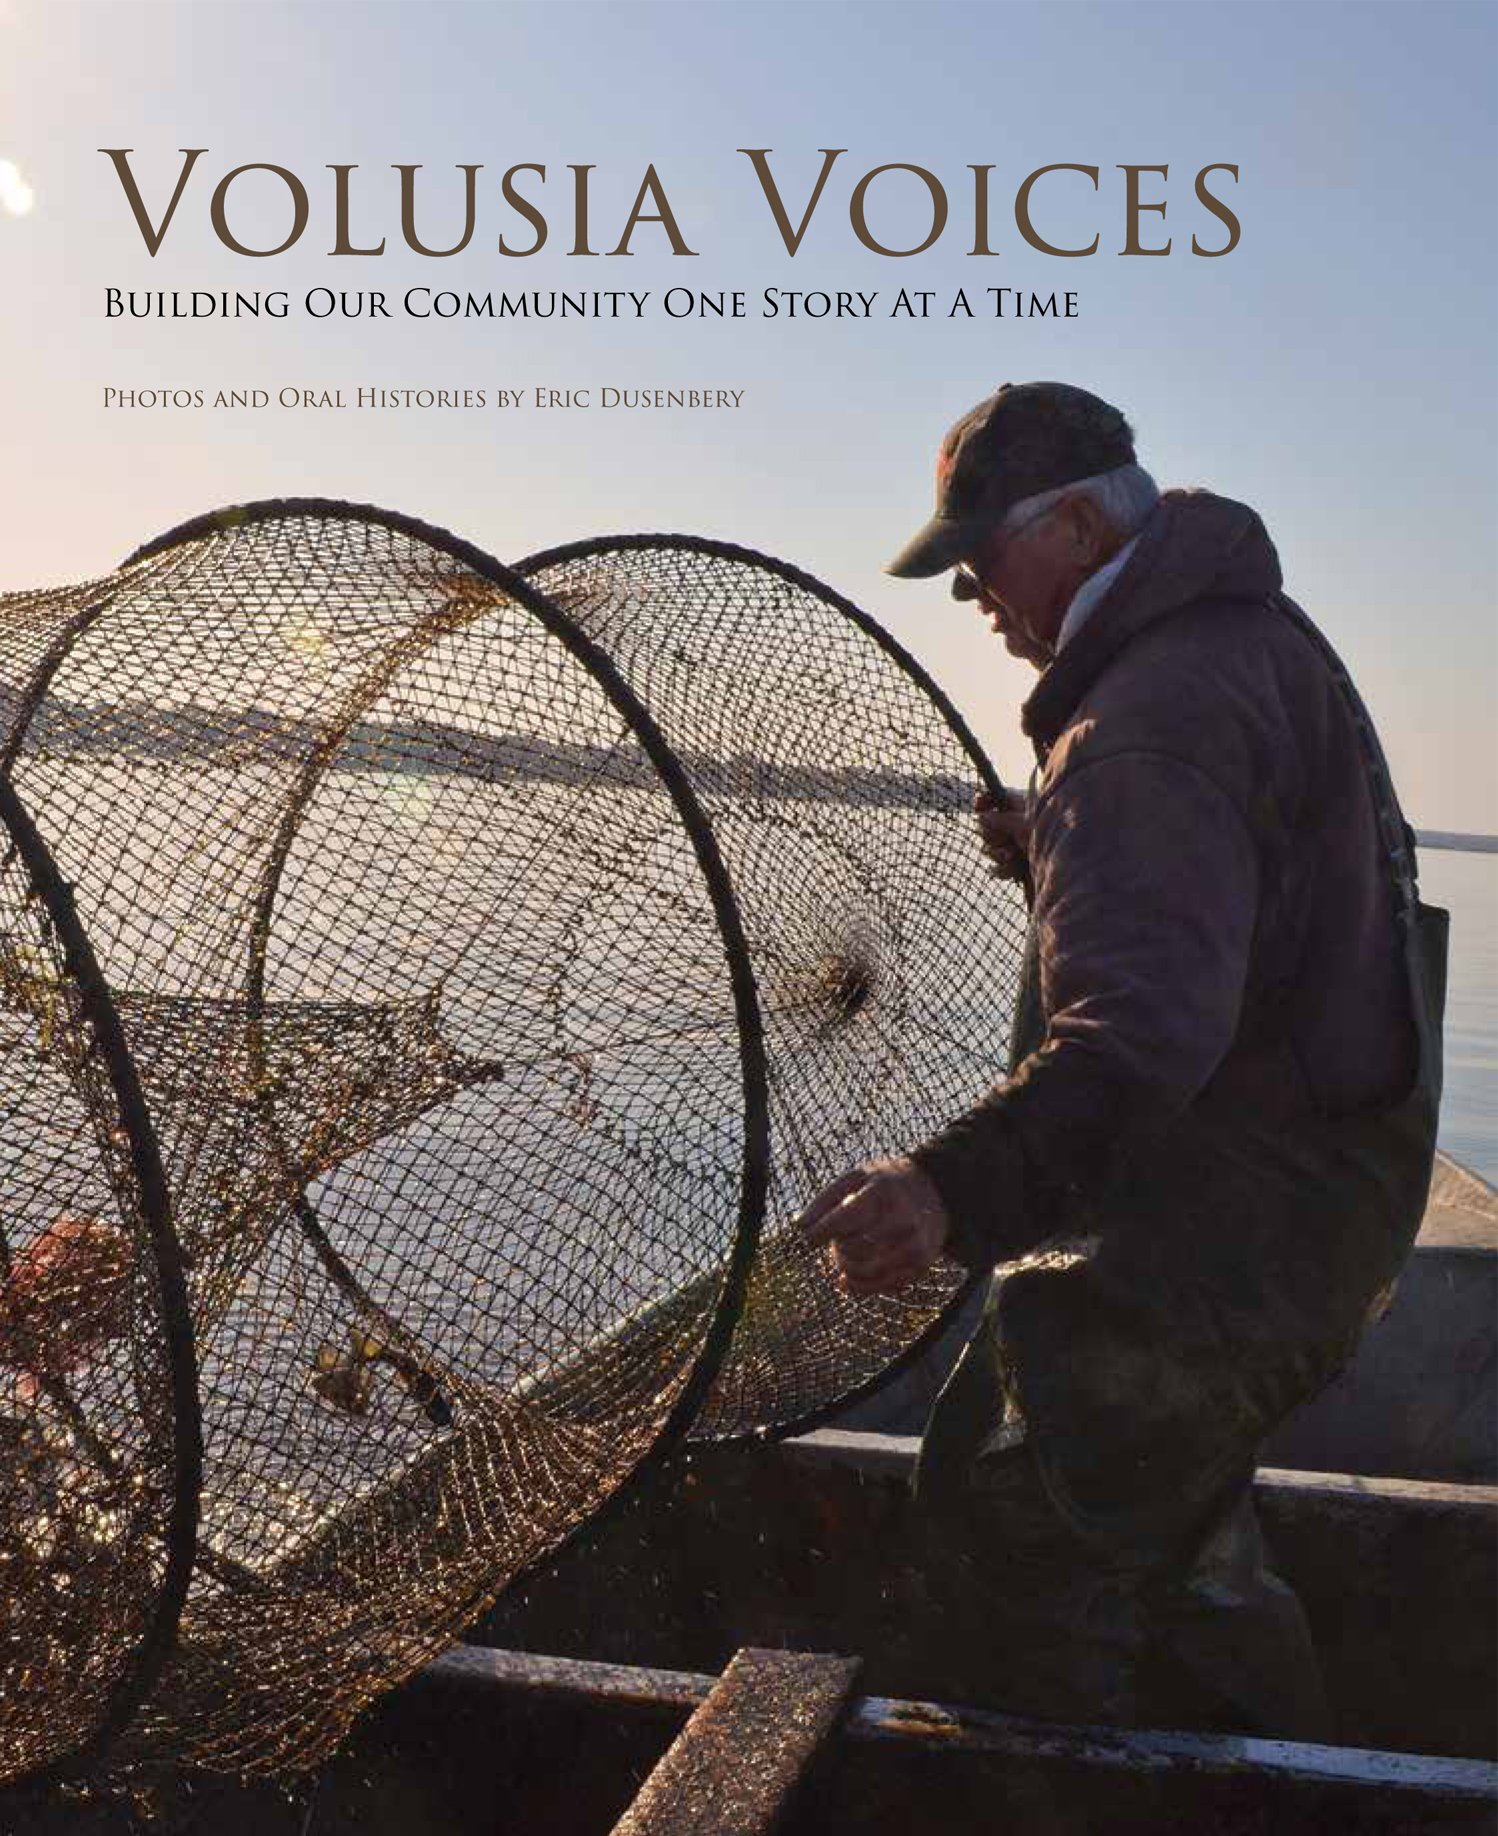 Download Volusia Voices: Building Our Community One Story at a Time. ebook